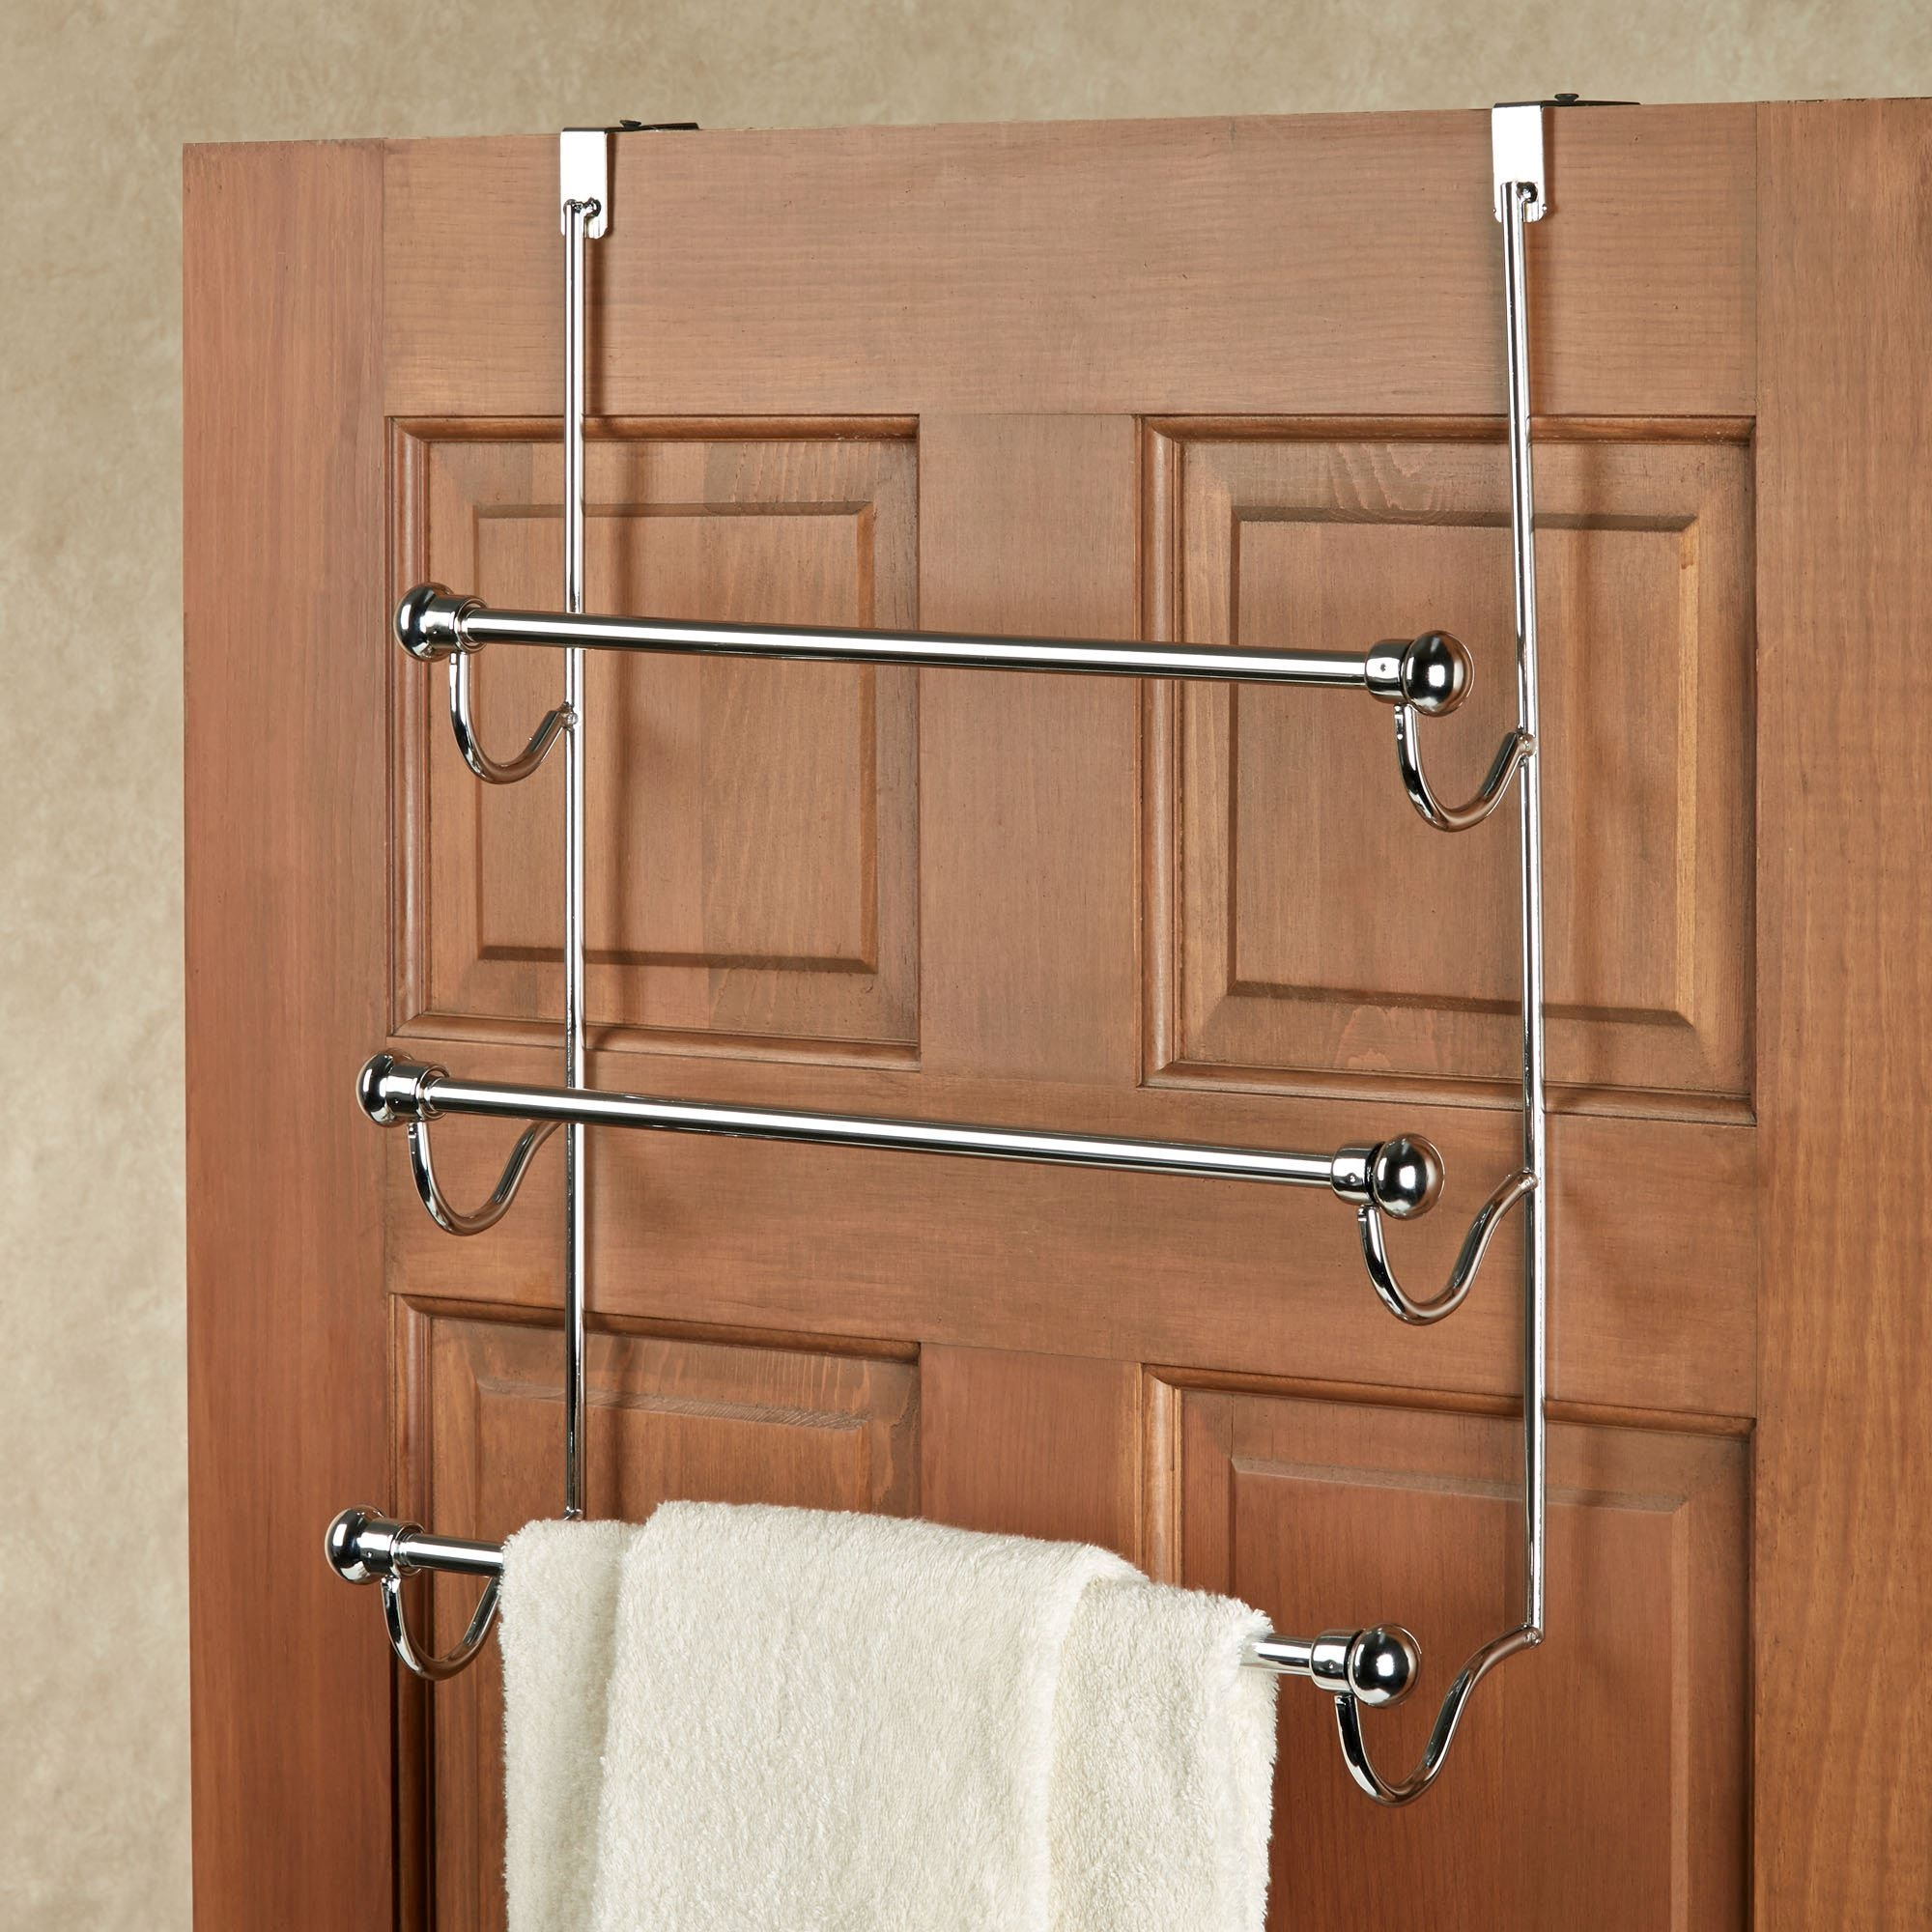 Over The Door Bath Towel Bar